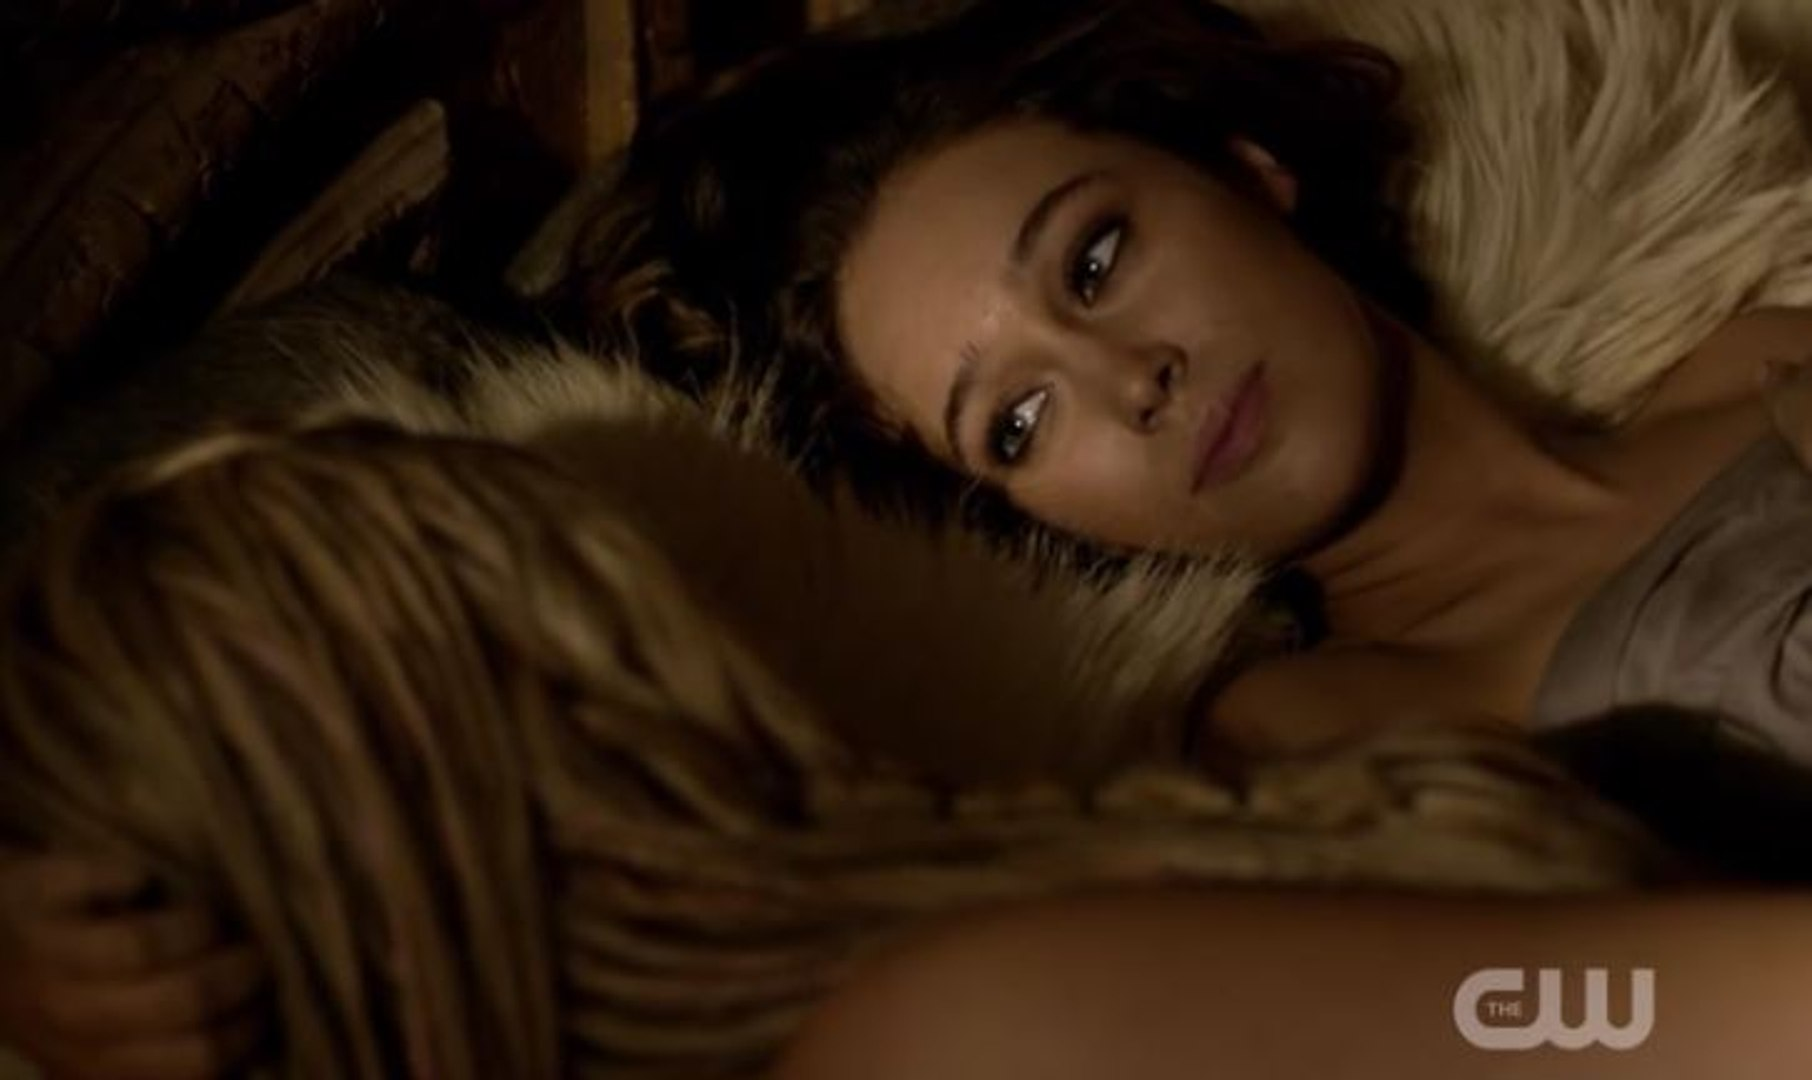 Alycia Debnam Carey Nackt the 100 : clarke and lexa bed scene (alycia debnam-carey)